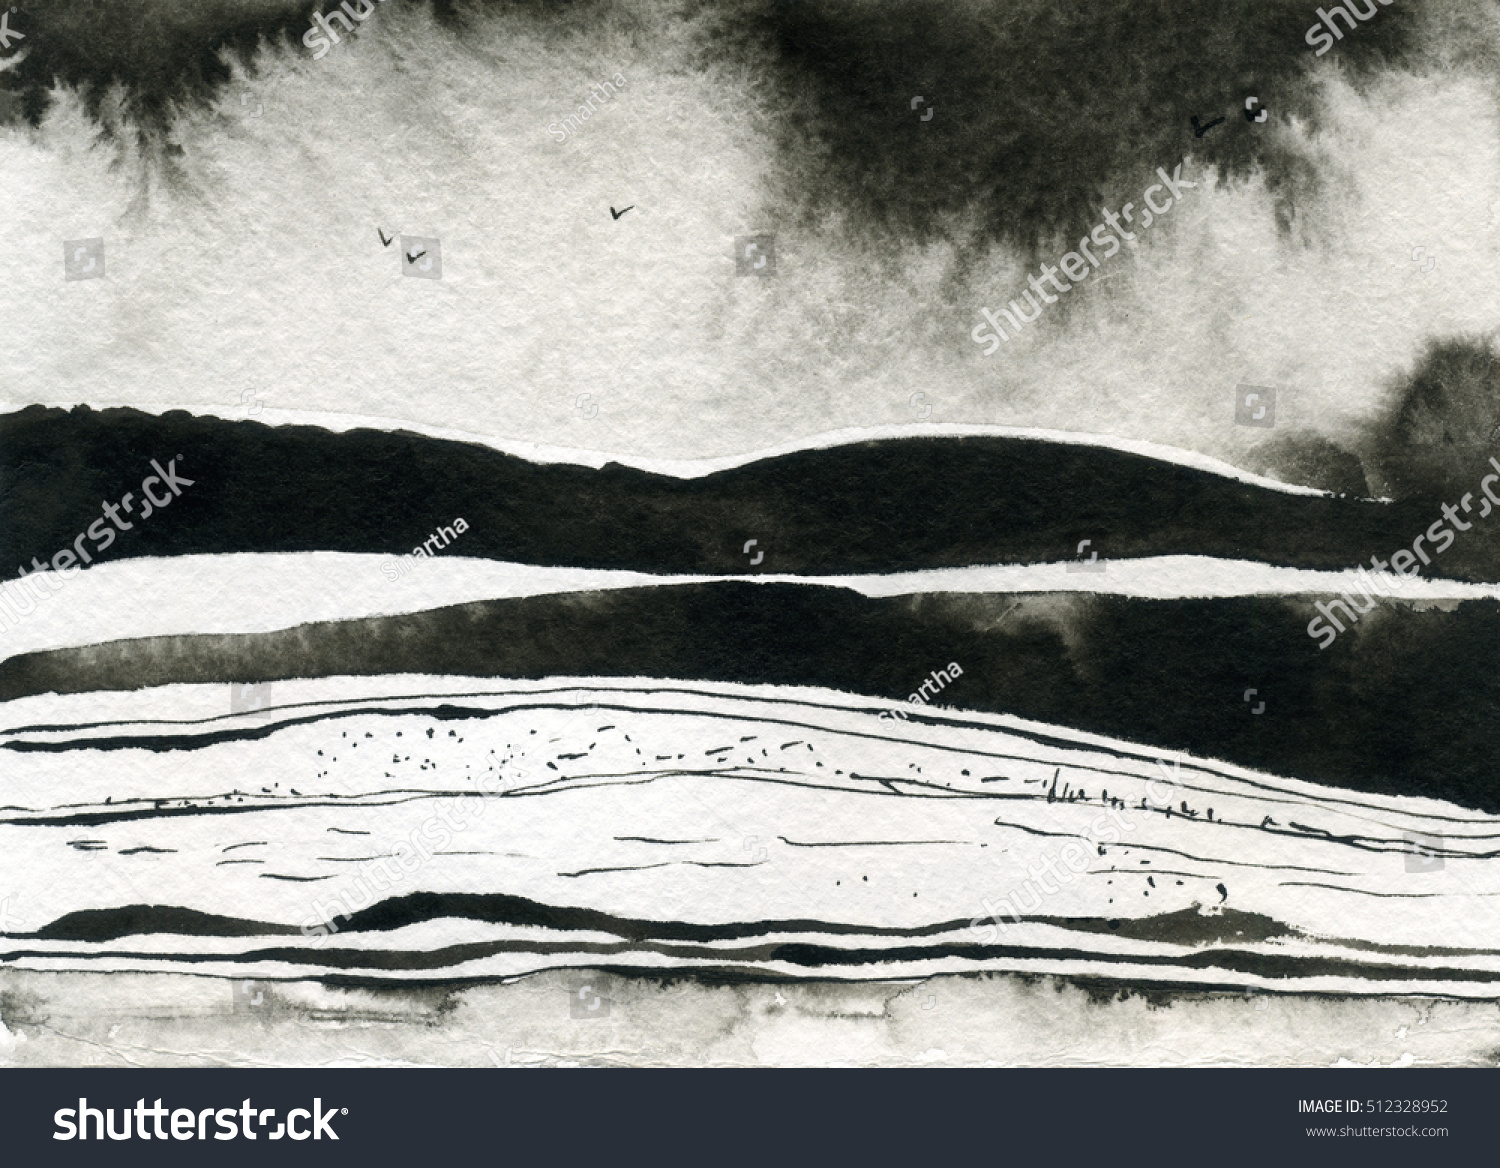 ink hand drawn illustration with abstract landscape black and white ink winter landscape with river